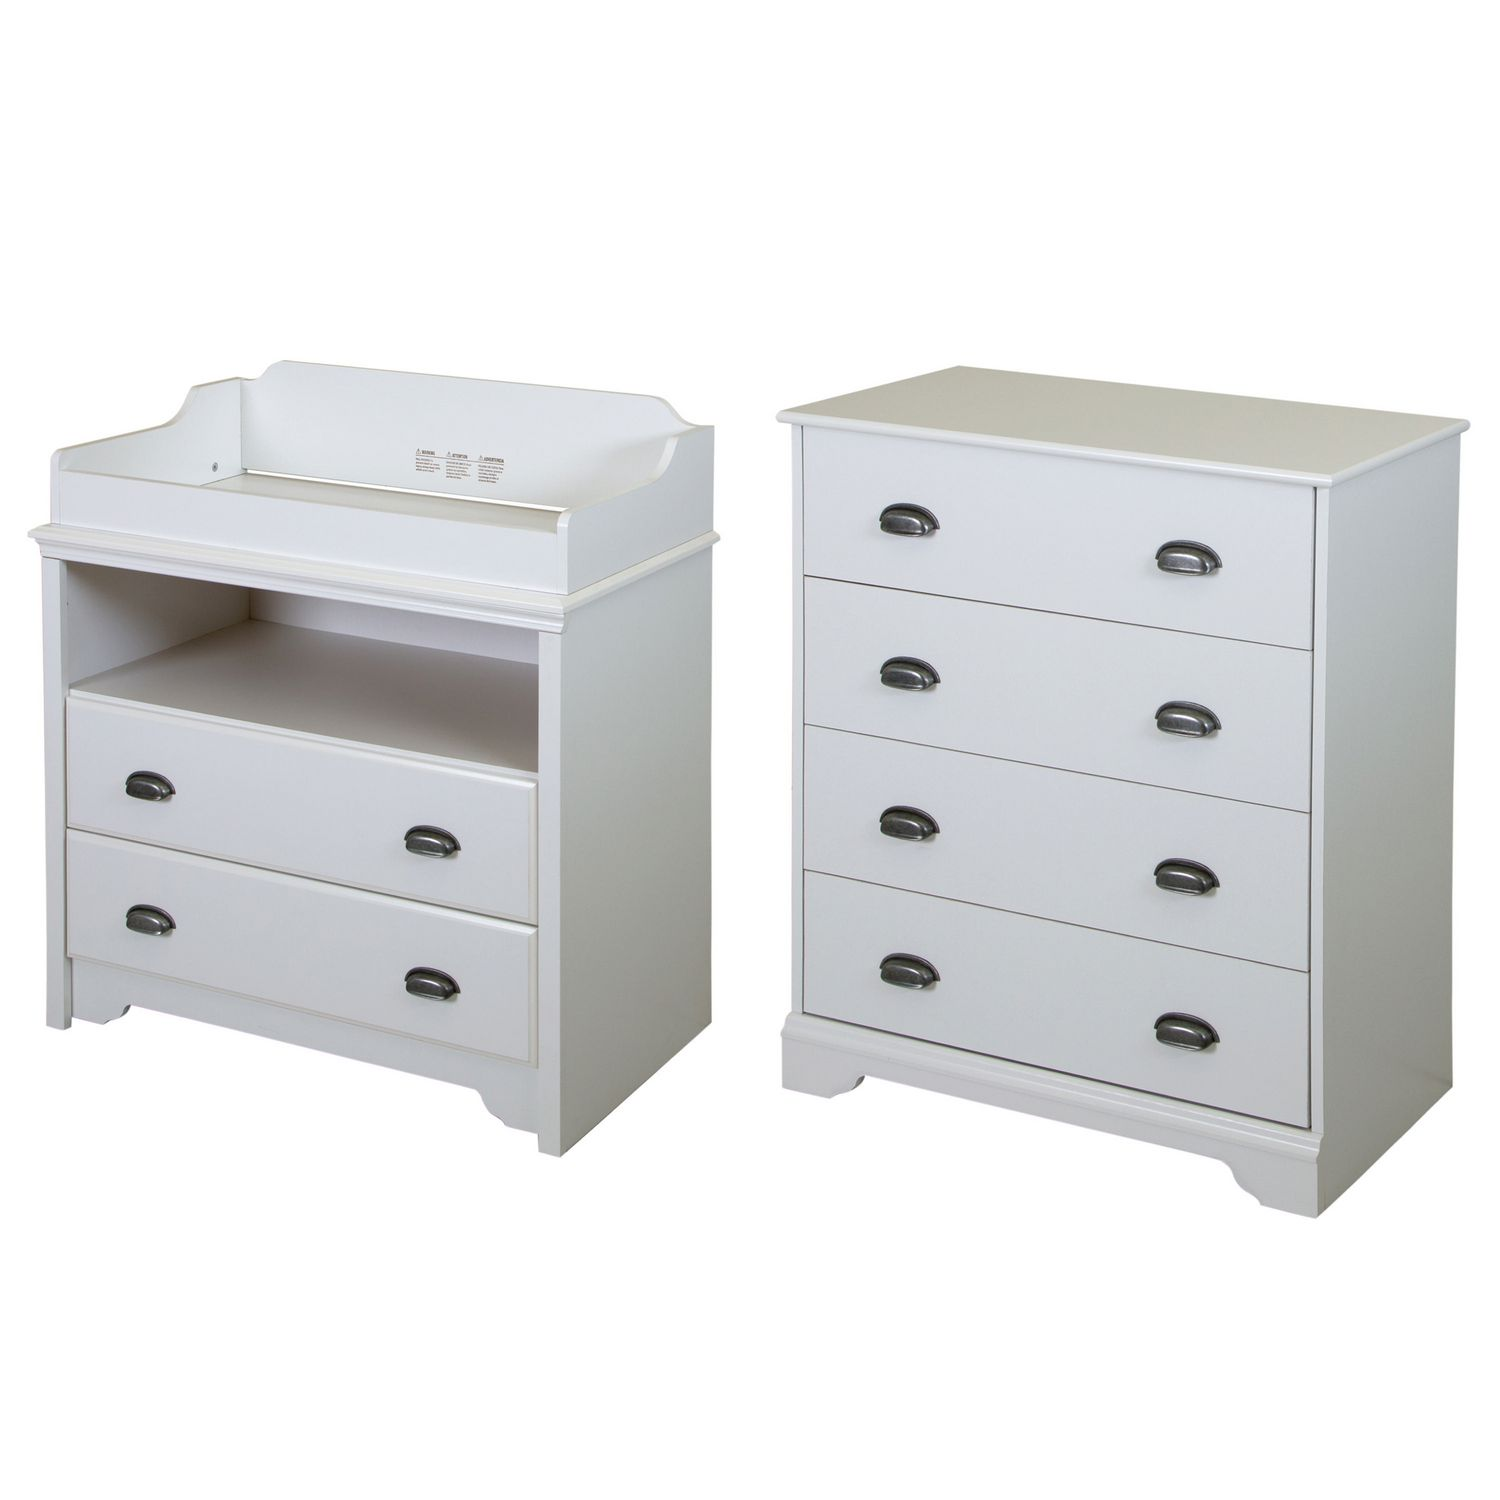 with tray changing white designs design image table removable best drawers of oo